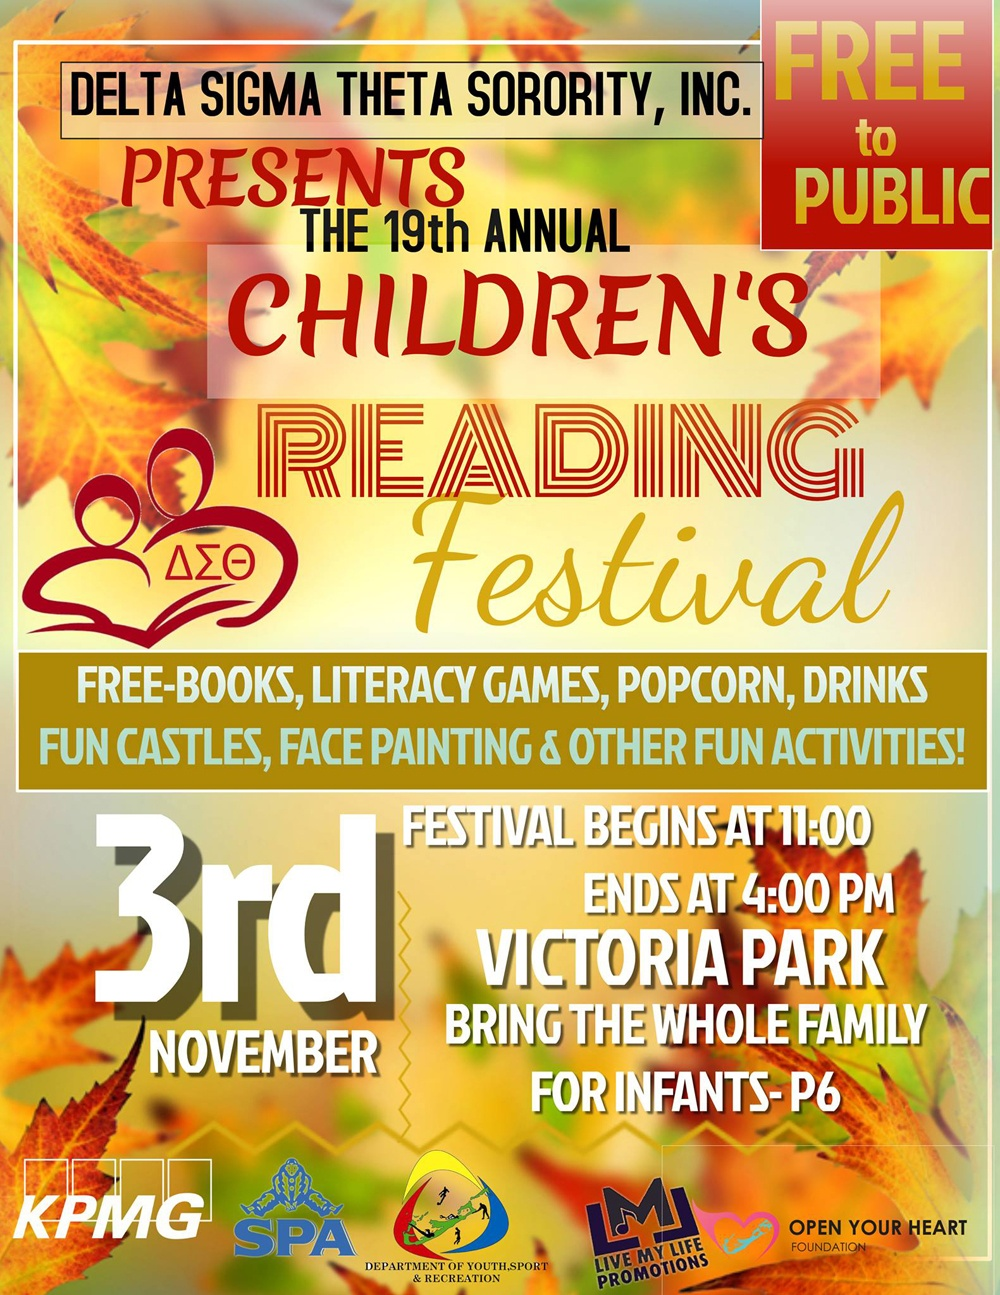 Children's Reading Festival Bermuda Oct 23 2018